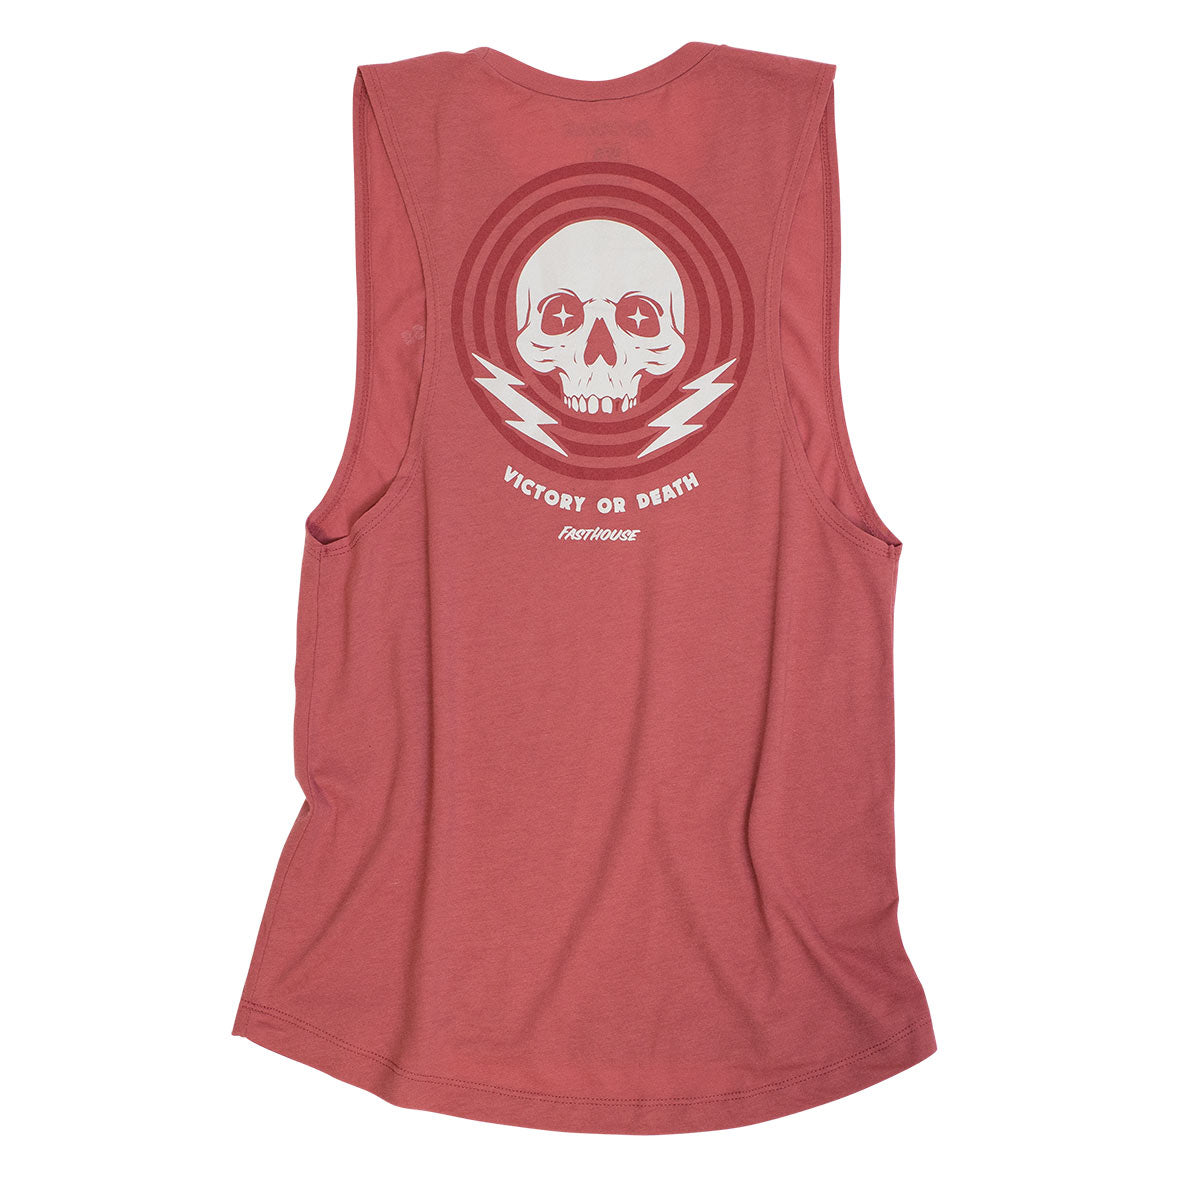 Victory or Death Women's Muscle Tank - Paprika